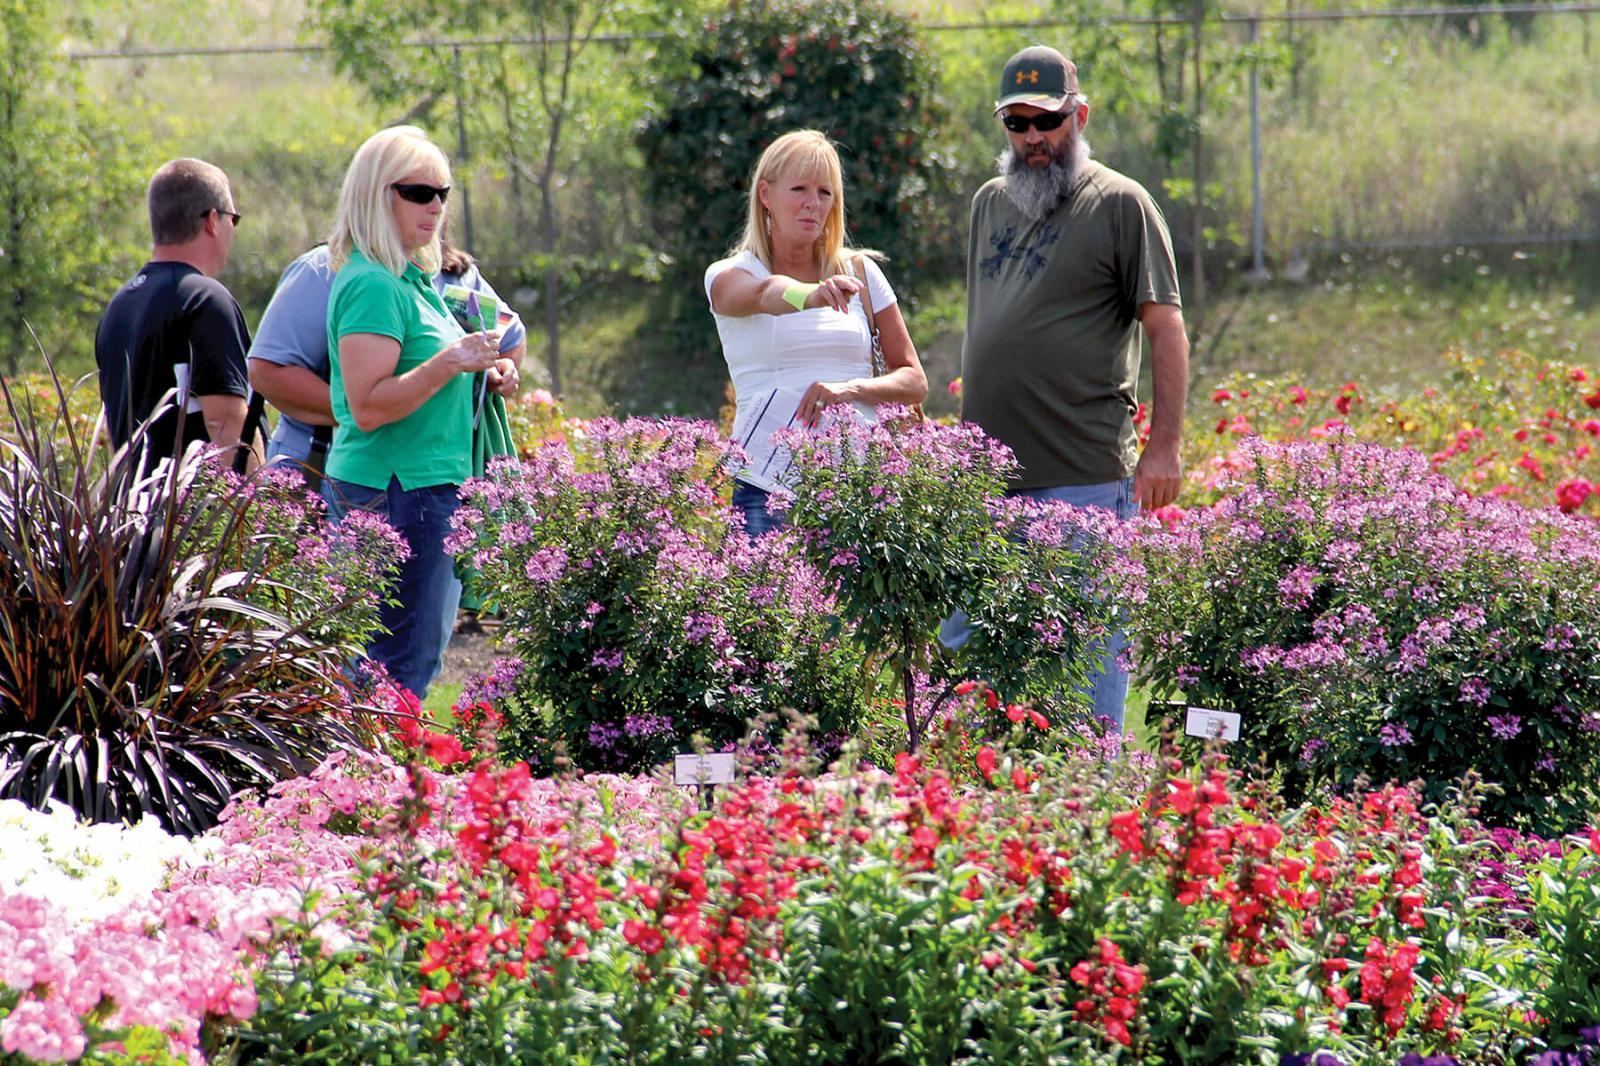 LO and University of Guelph host tours of trial gardens